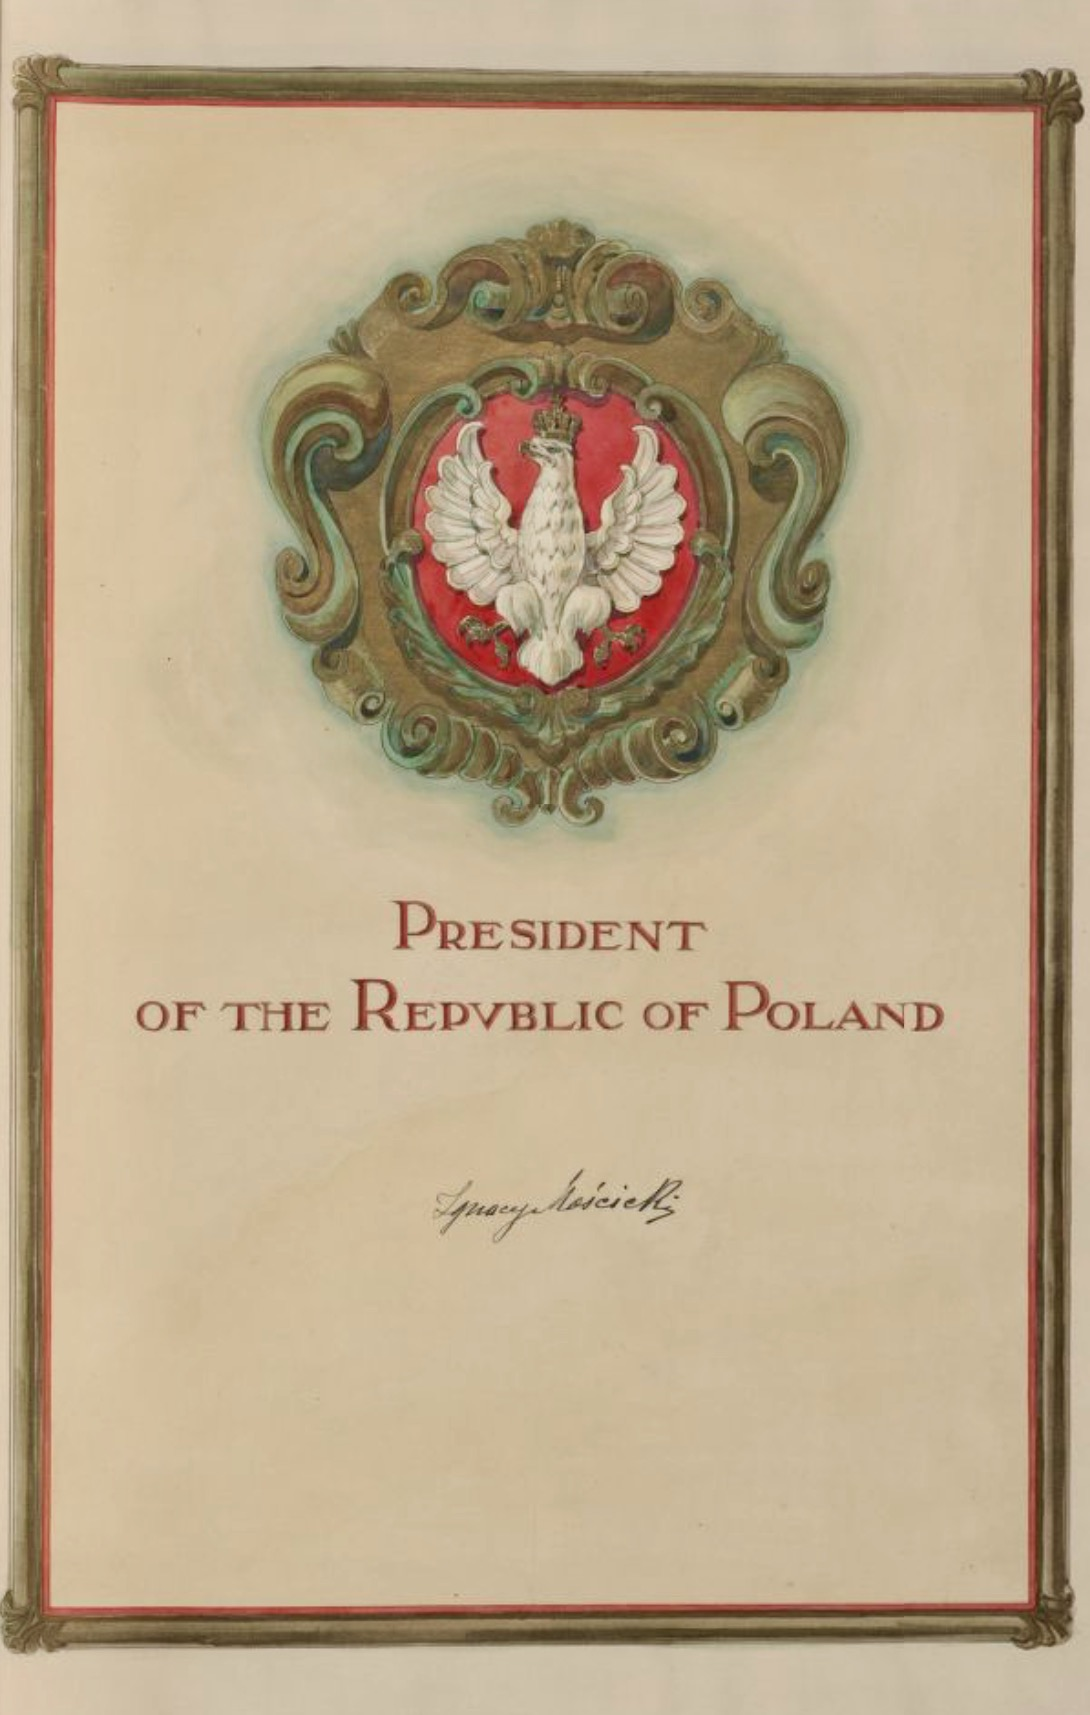 President of the Republic of Poland